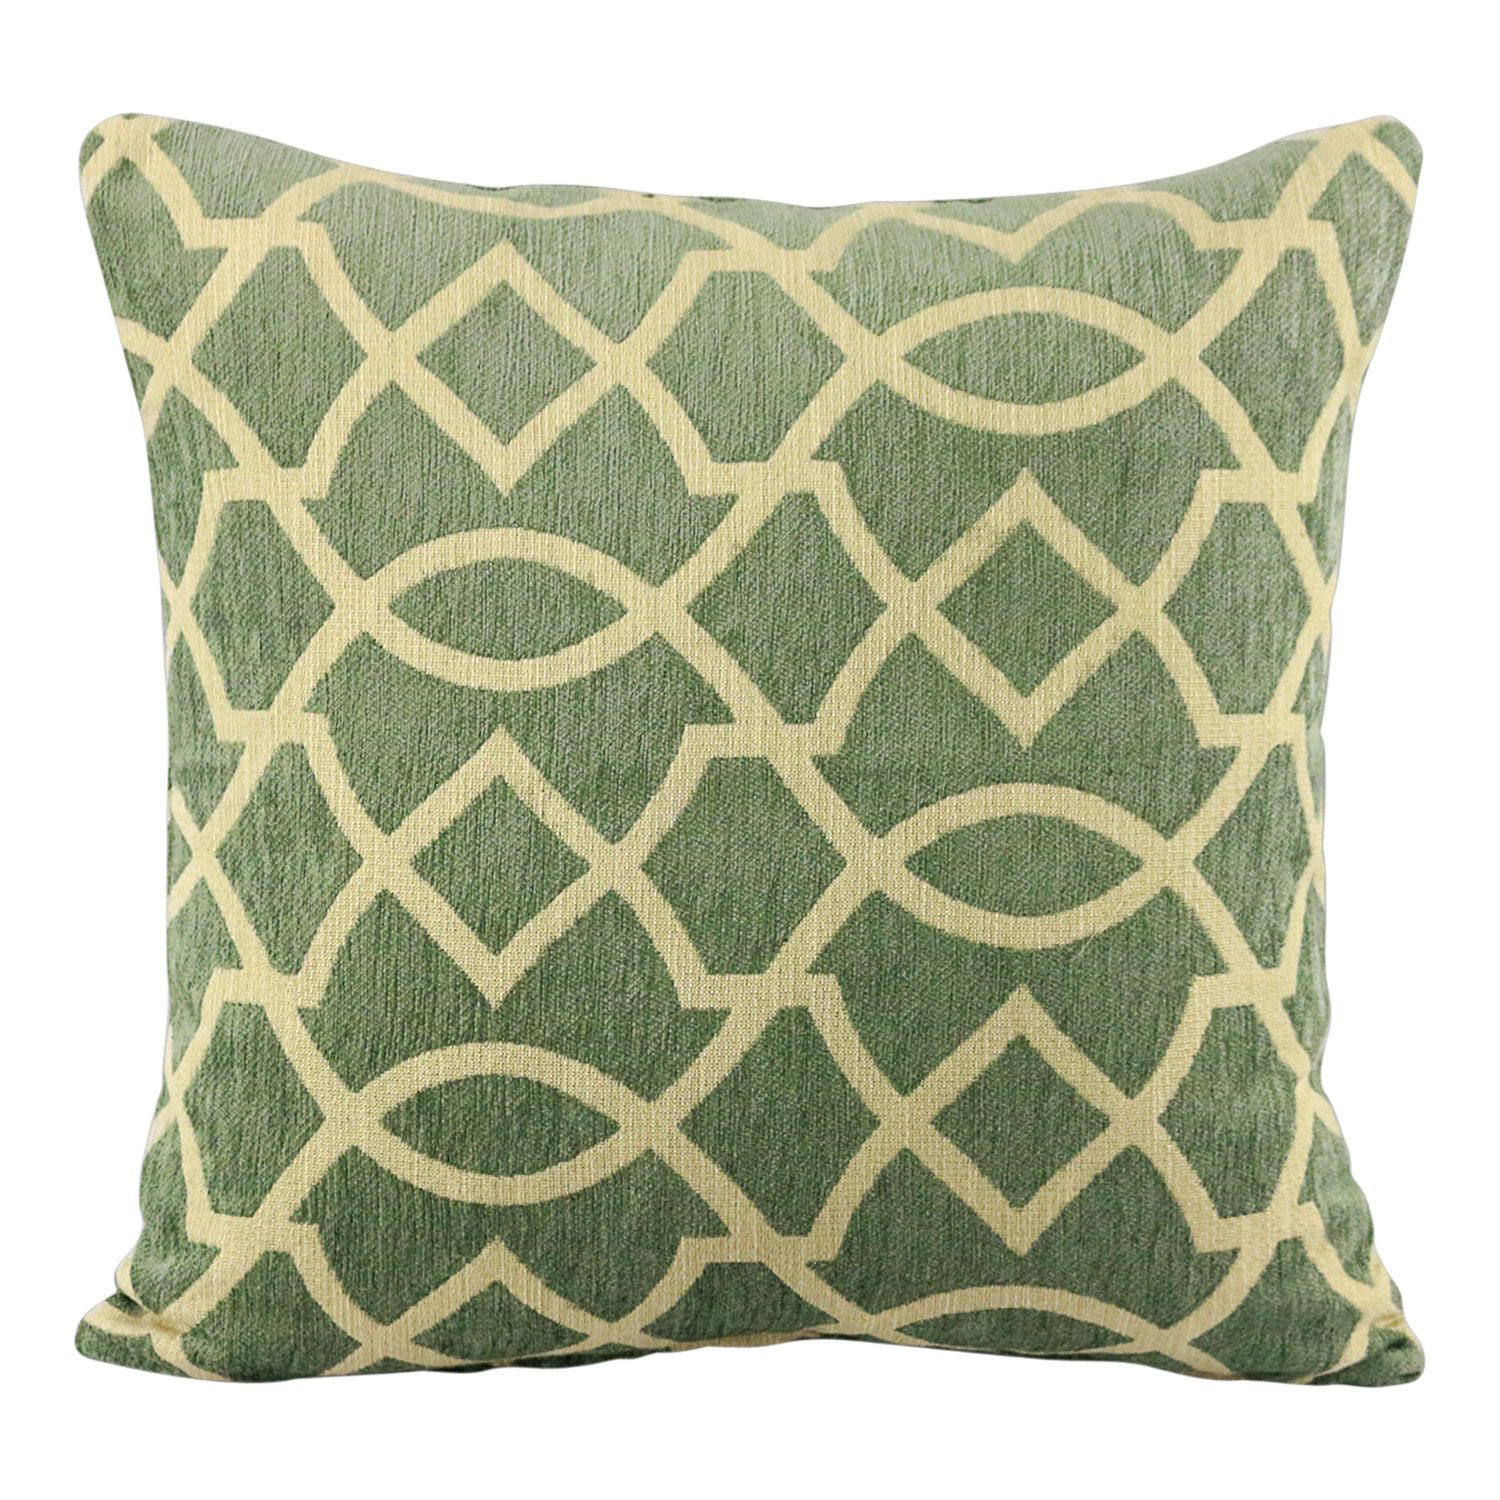 Beige geometric shapes on green inch and lumbar pillows by